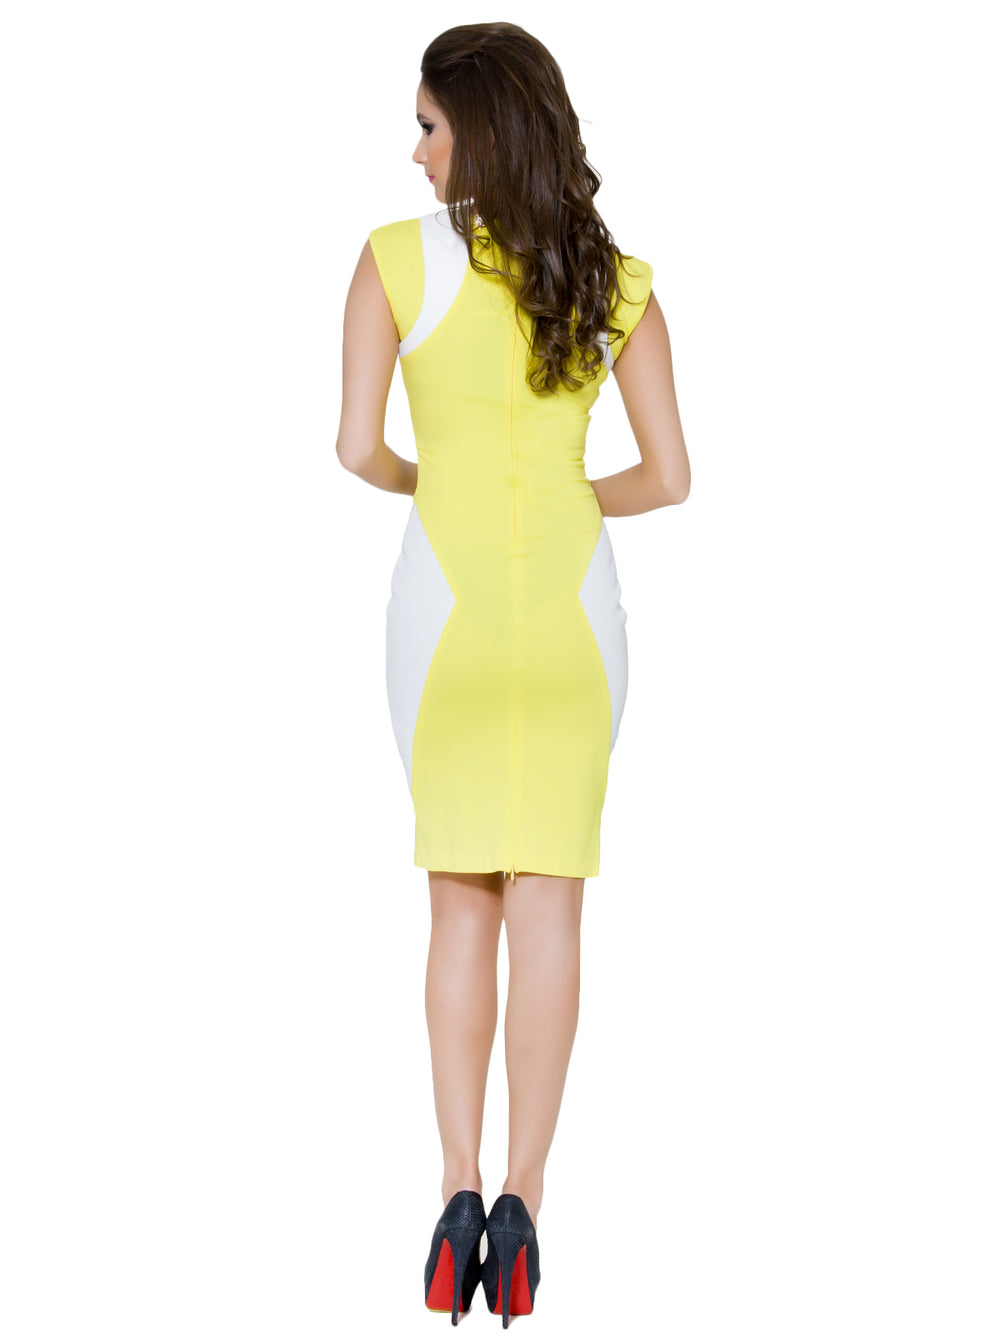 Short Yellow Dress, BYBLOS - elilhaam.com